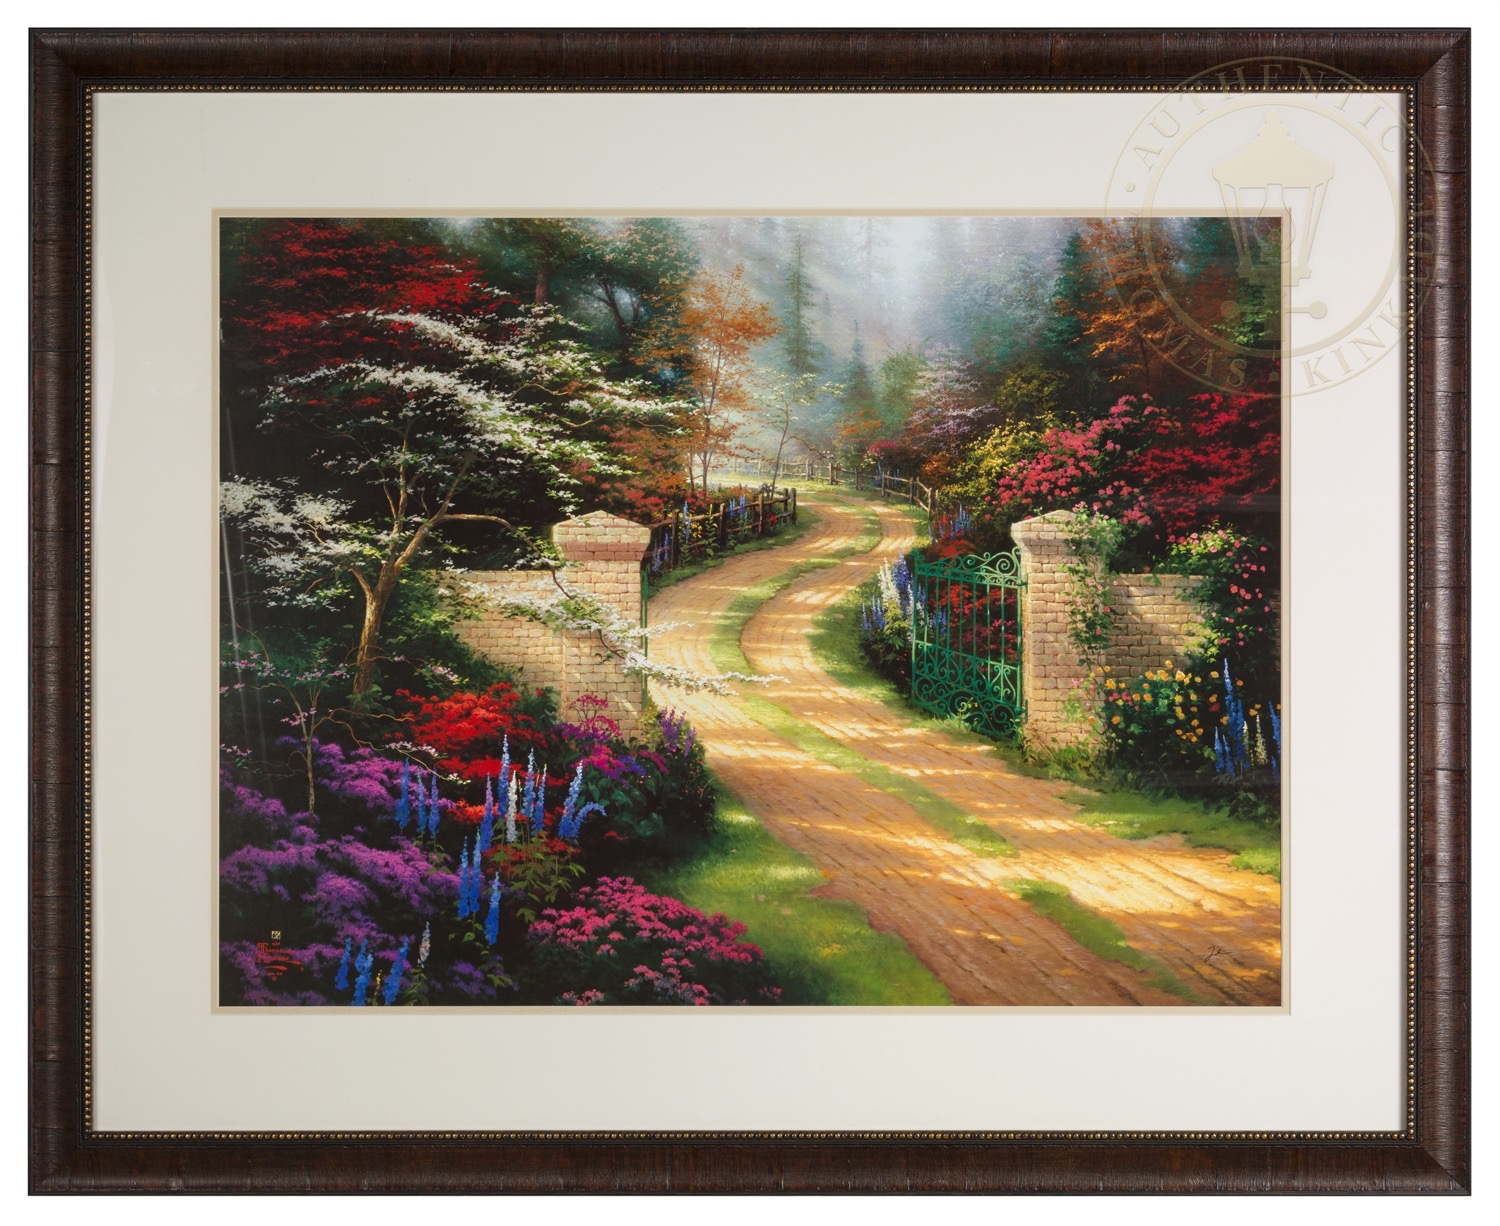 Spring Gate Framed Matted Print Signed By Thomas Kinkade